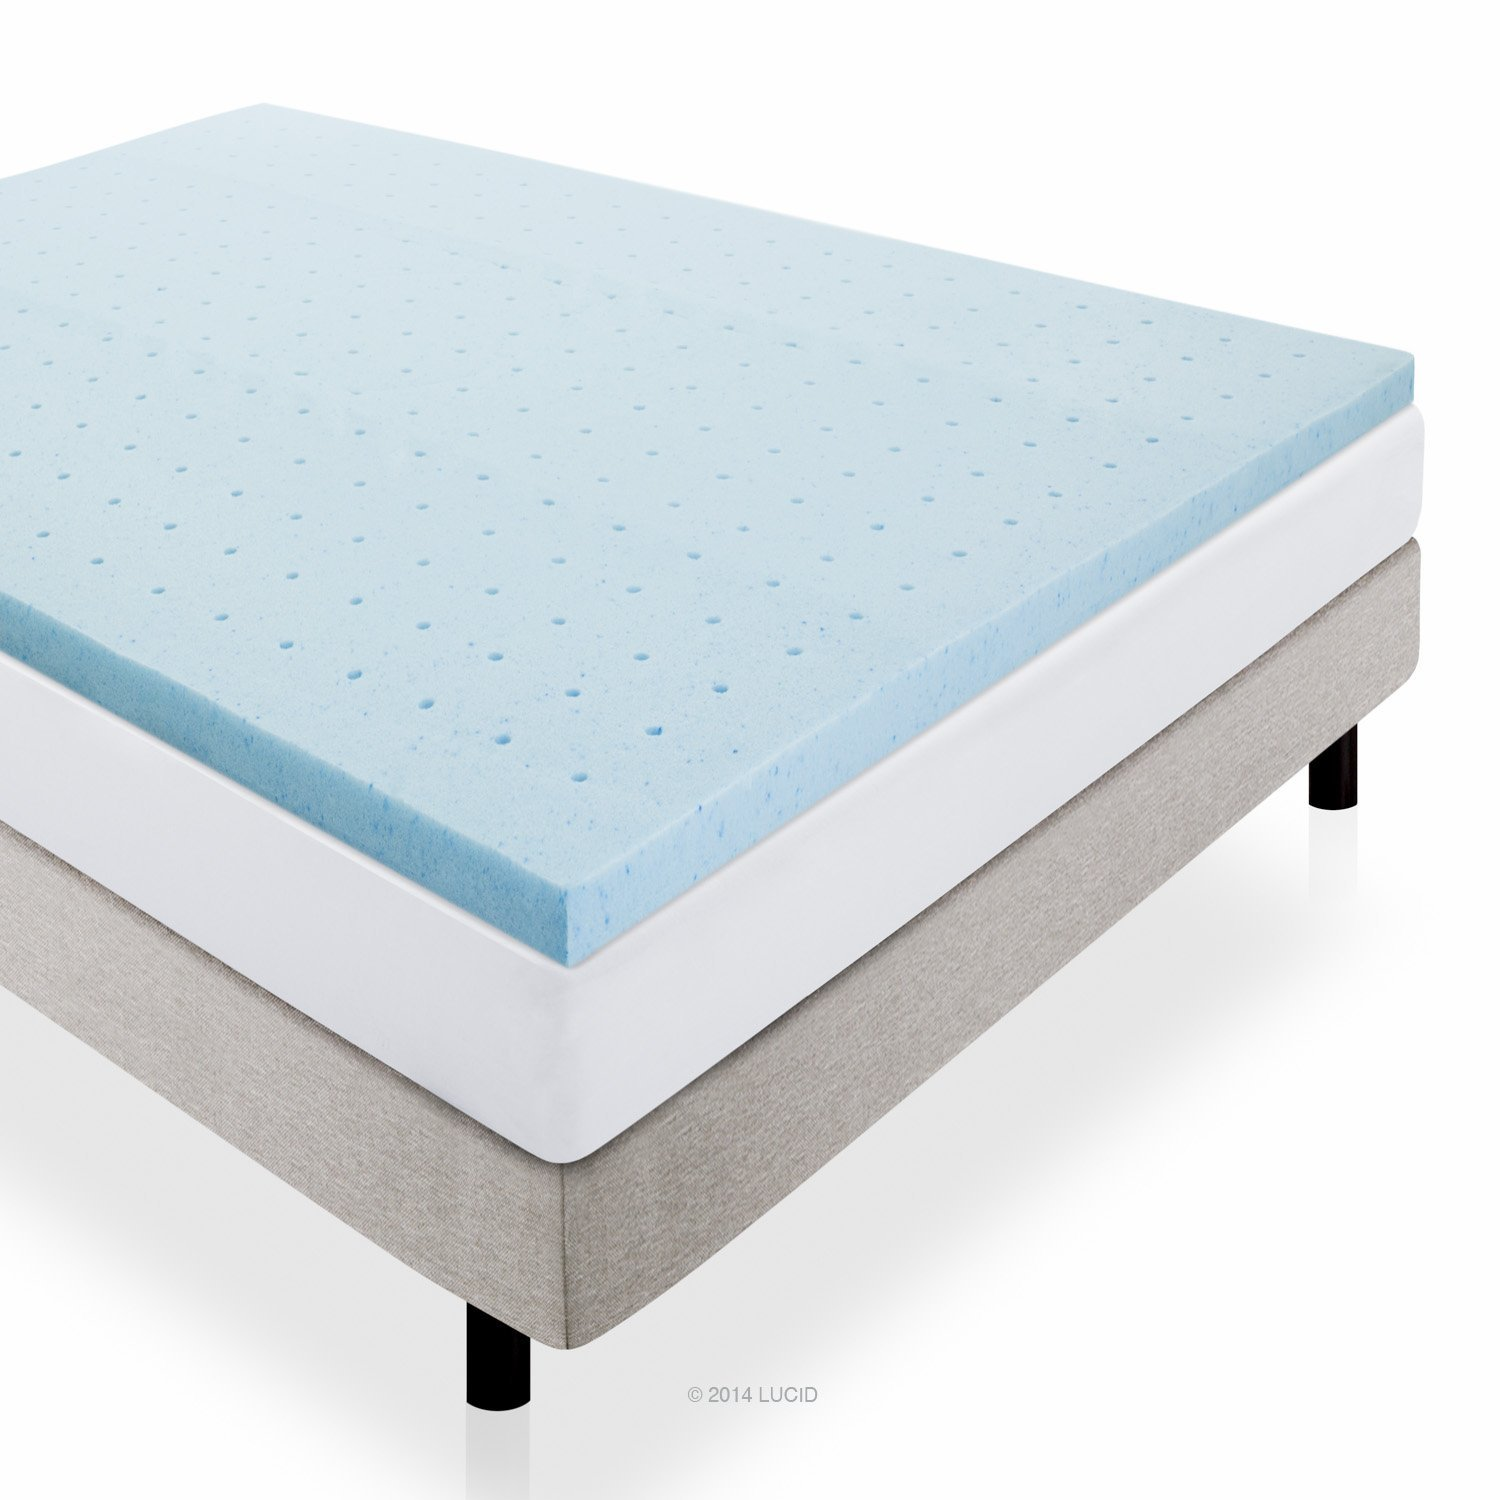 bedding nest reviews cooling pad protector mattress review nestbeddingcoolingreviewfull